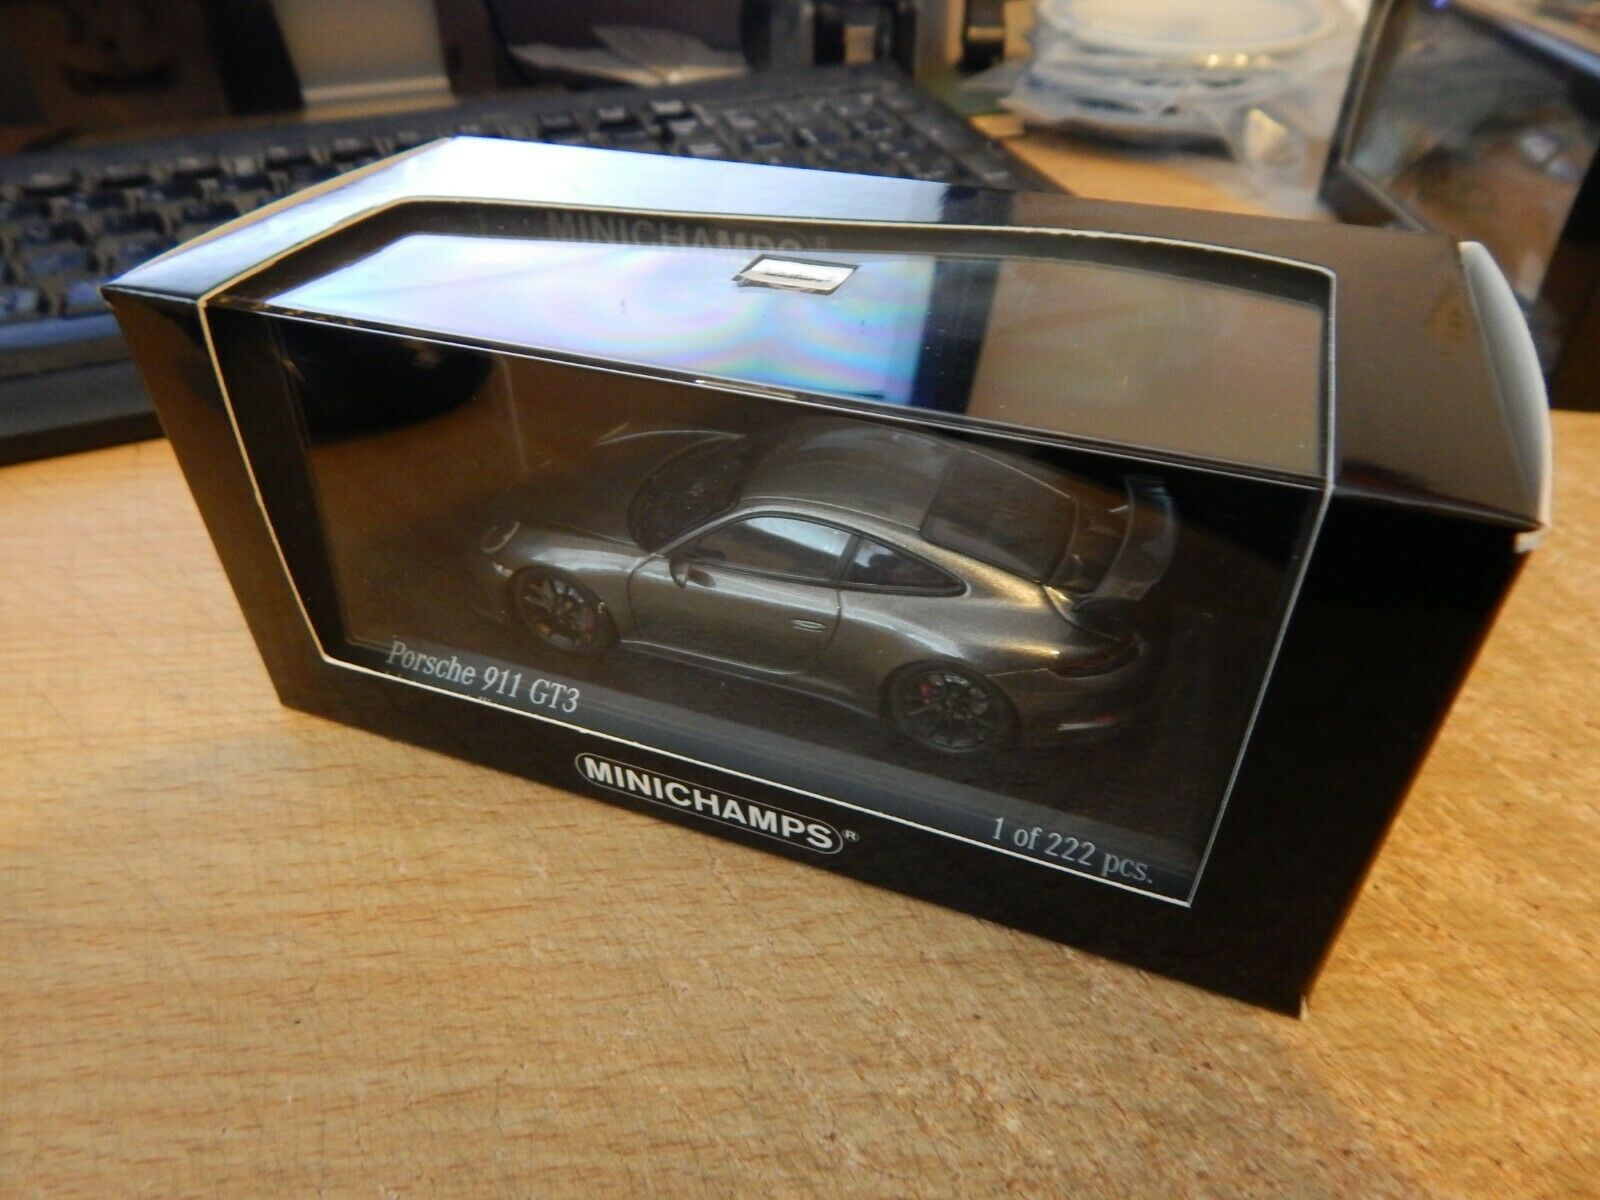 MINICHAMPS 1 43 Porsche 911 GT3 metallic grey 413066033 BOXED L.E 222 pcs